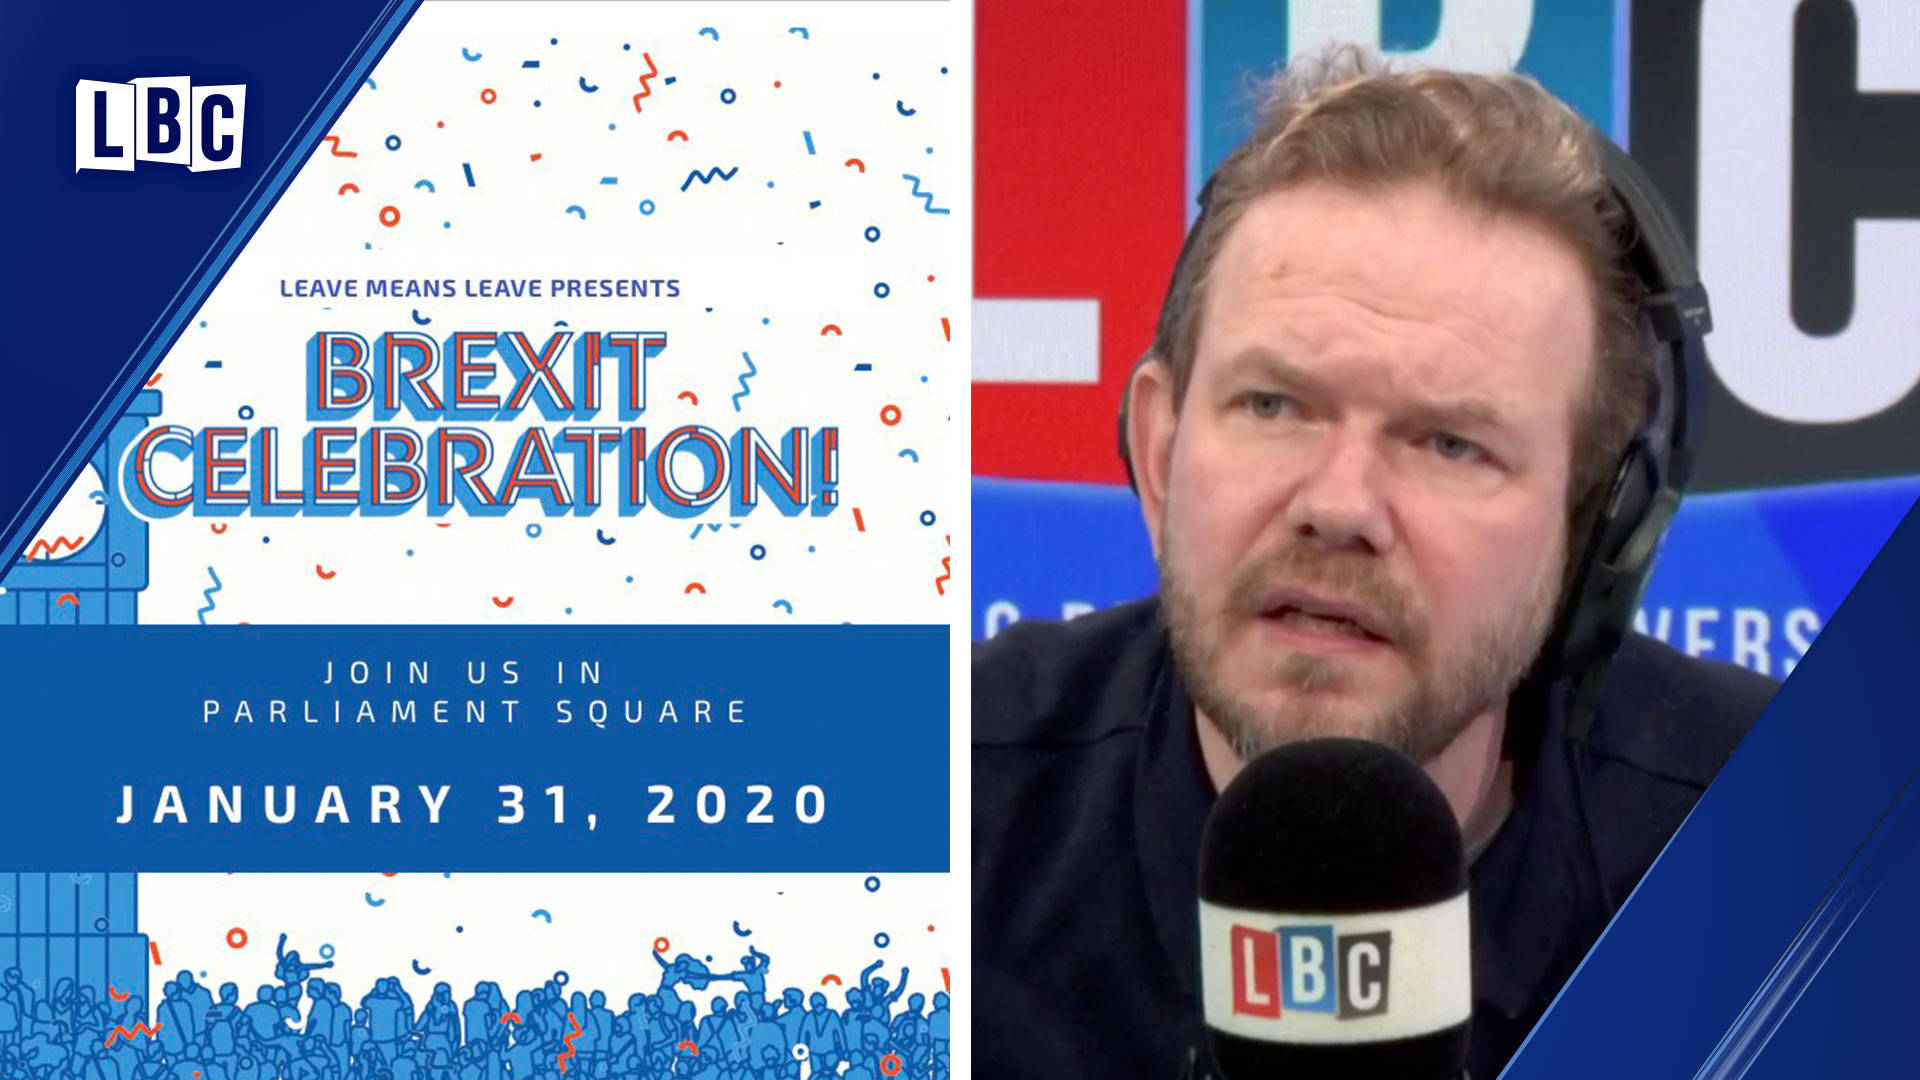 James O'Brien's message to Remainers about Nigel Farage's Brexit celebration